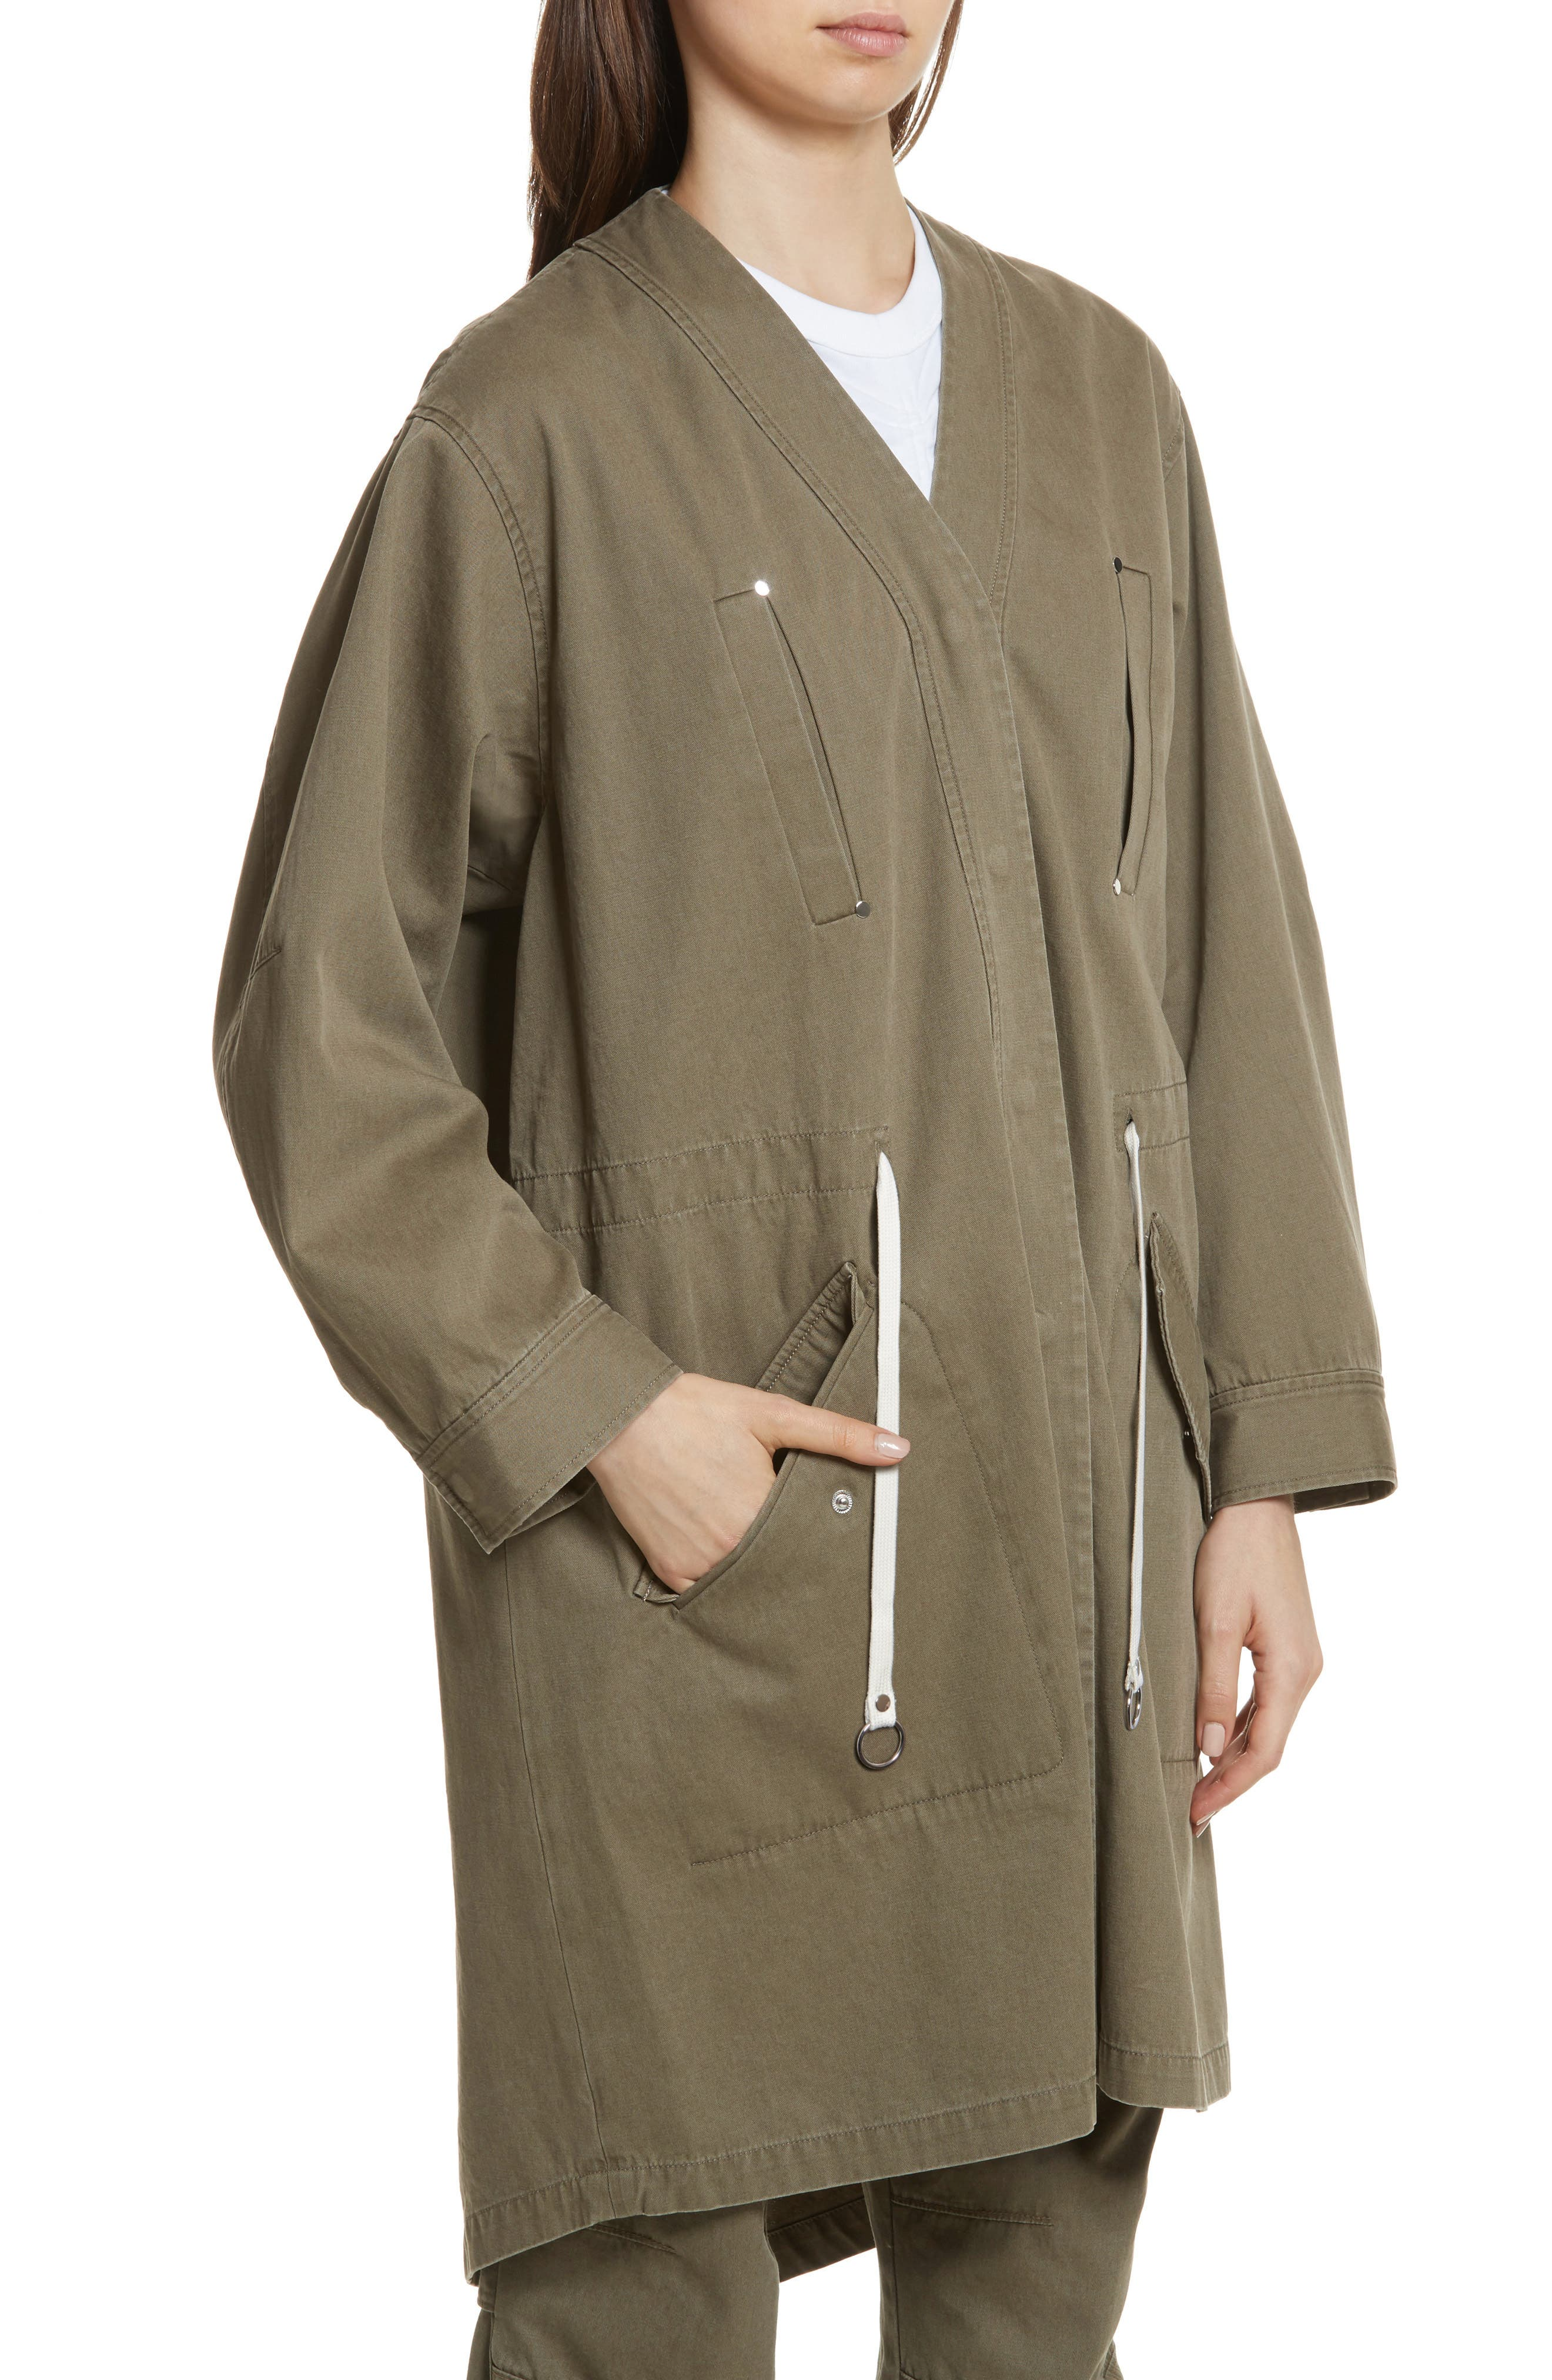 T by Alexander Wang Longline Twill Jacket,                             Alternate thumbnail 4, color,                             309